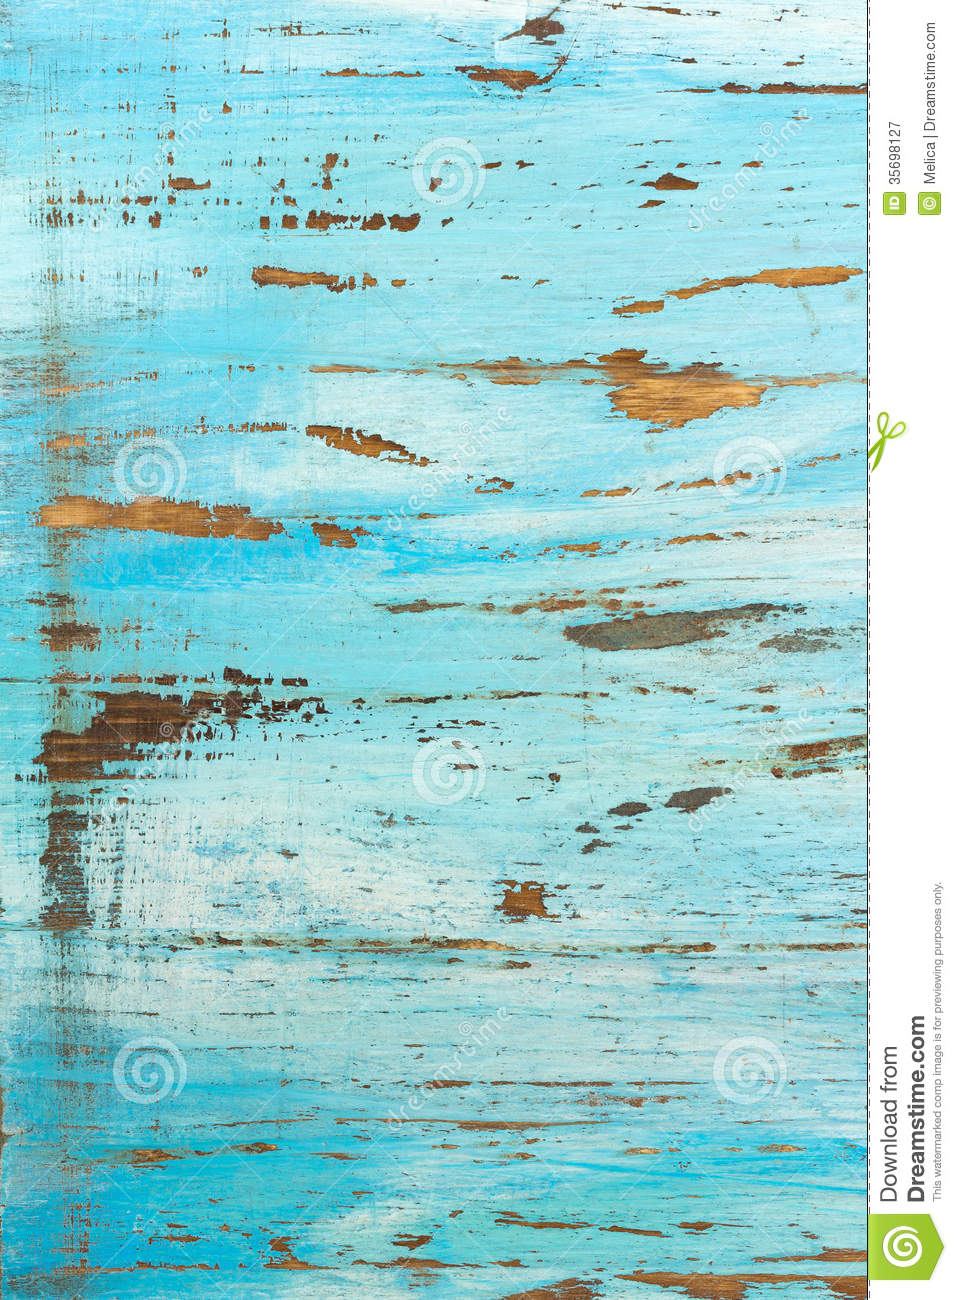 Royalty Free Stock Photography Old Rustic Background Blue Painted Wood Image35698127 on Language Arts Theme